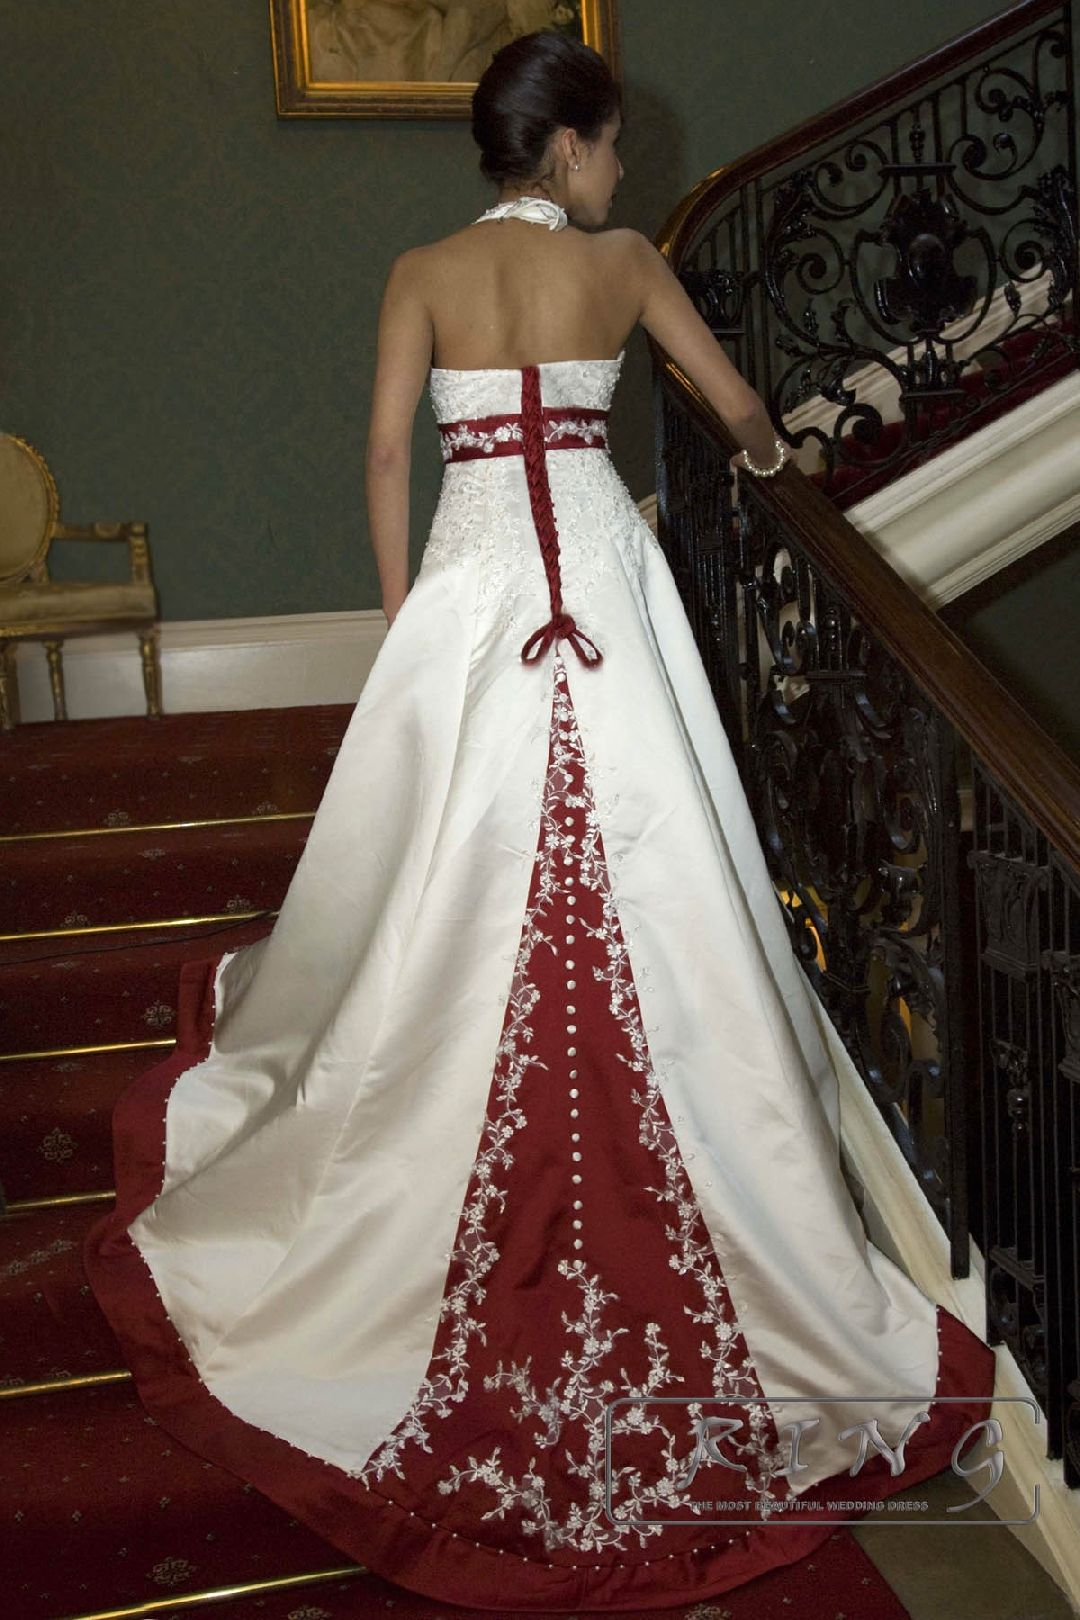 white and burgundy wedding dresses | Wedding at Hawaii | Pinterest ...